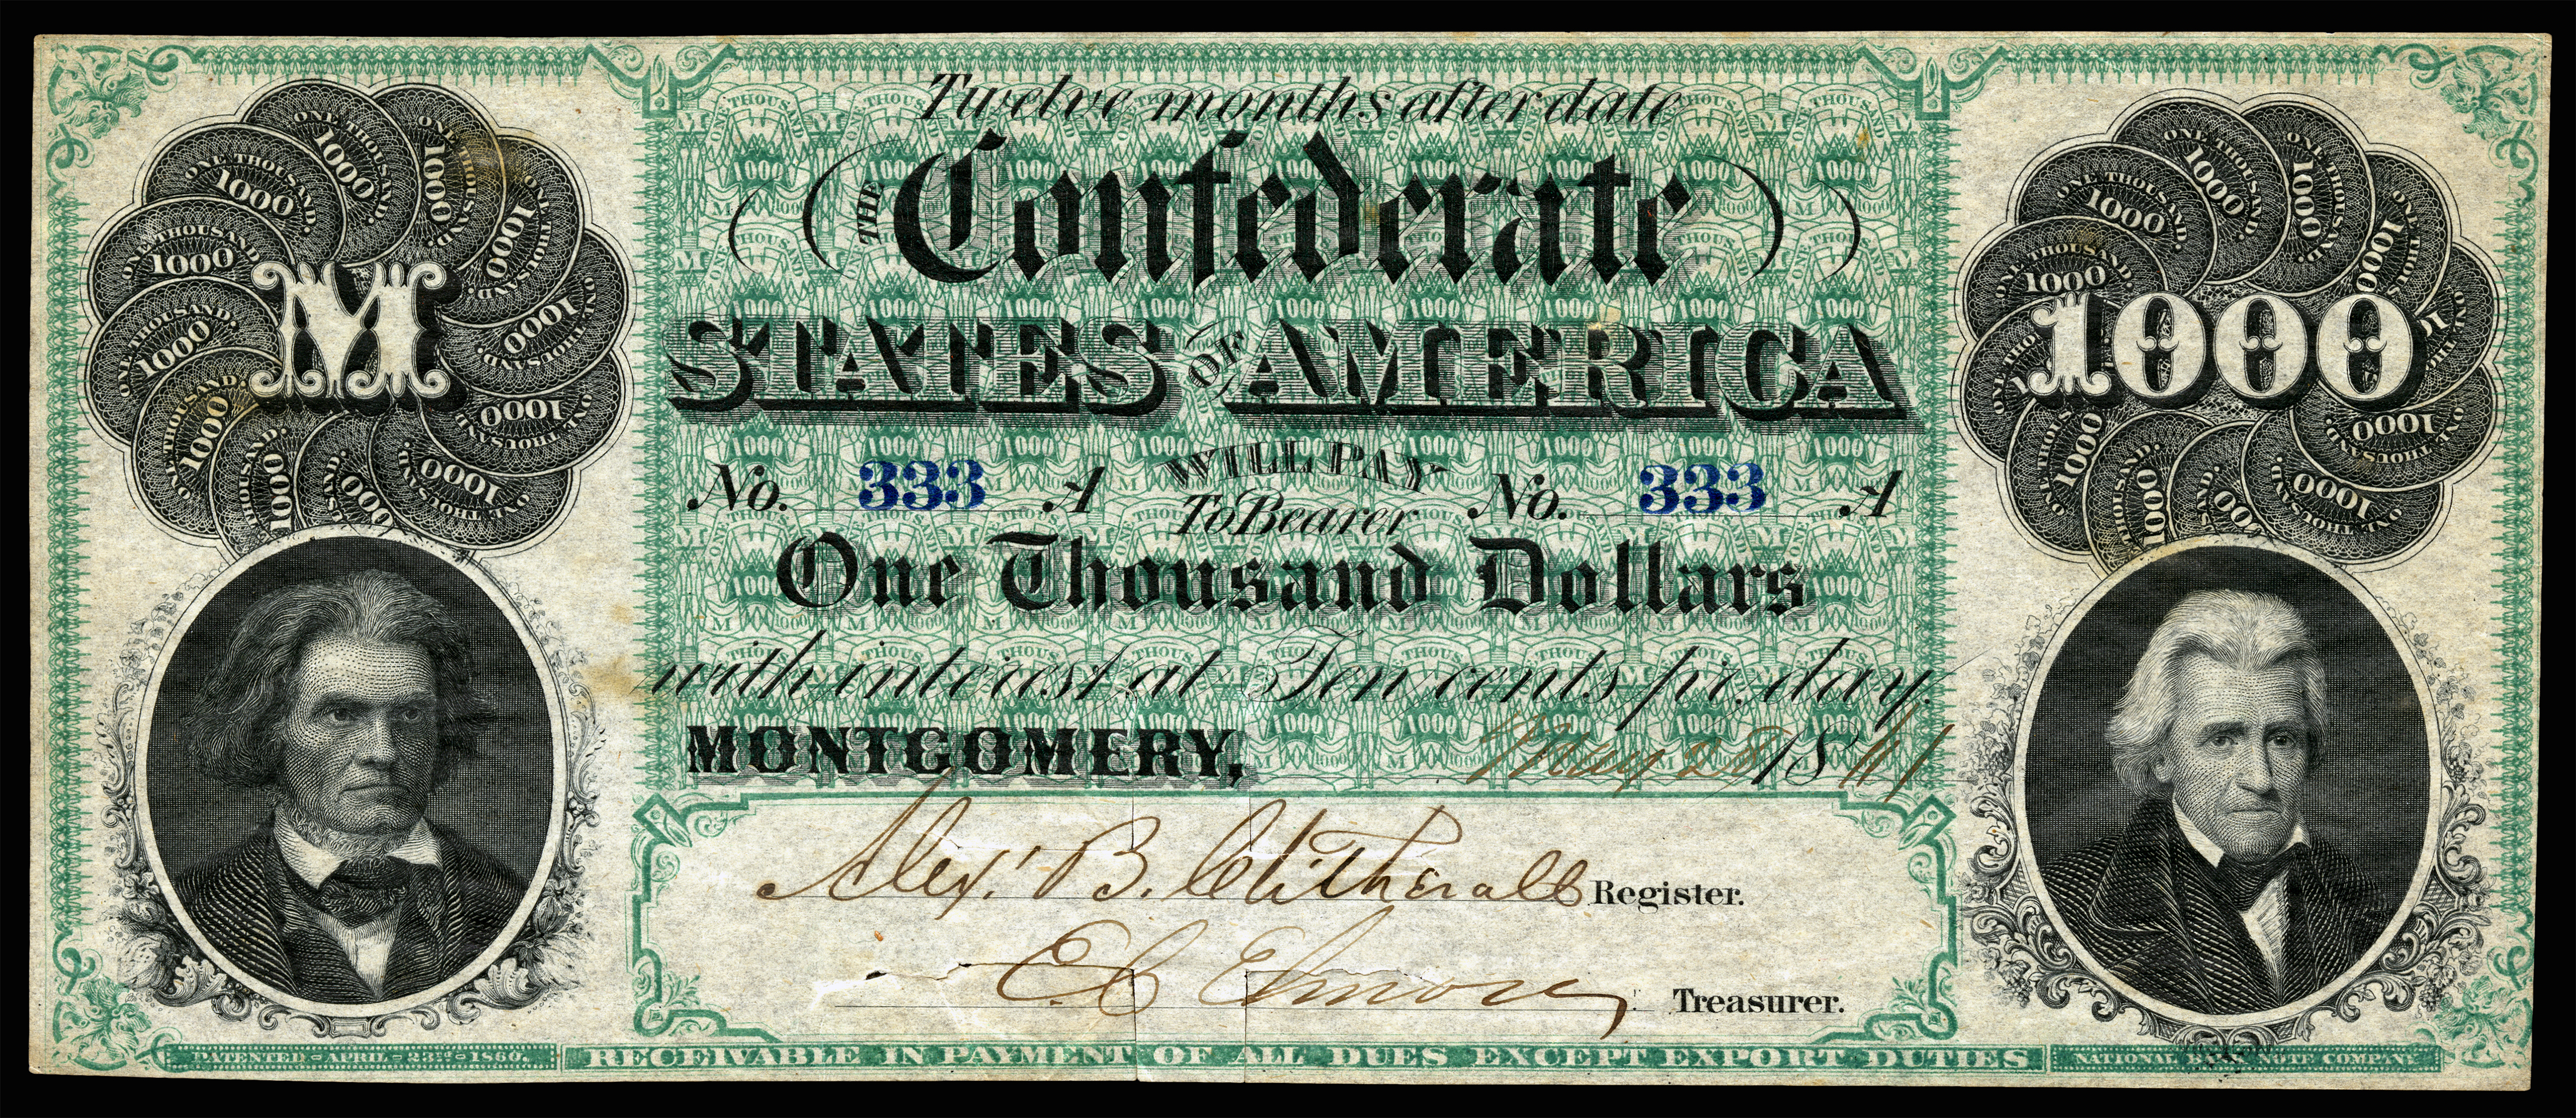 Currency Chart Today: Confederate States dollar - Wikipedia,Chart